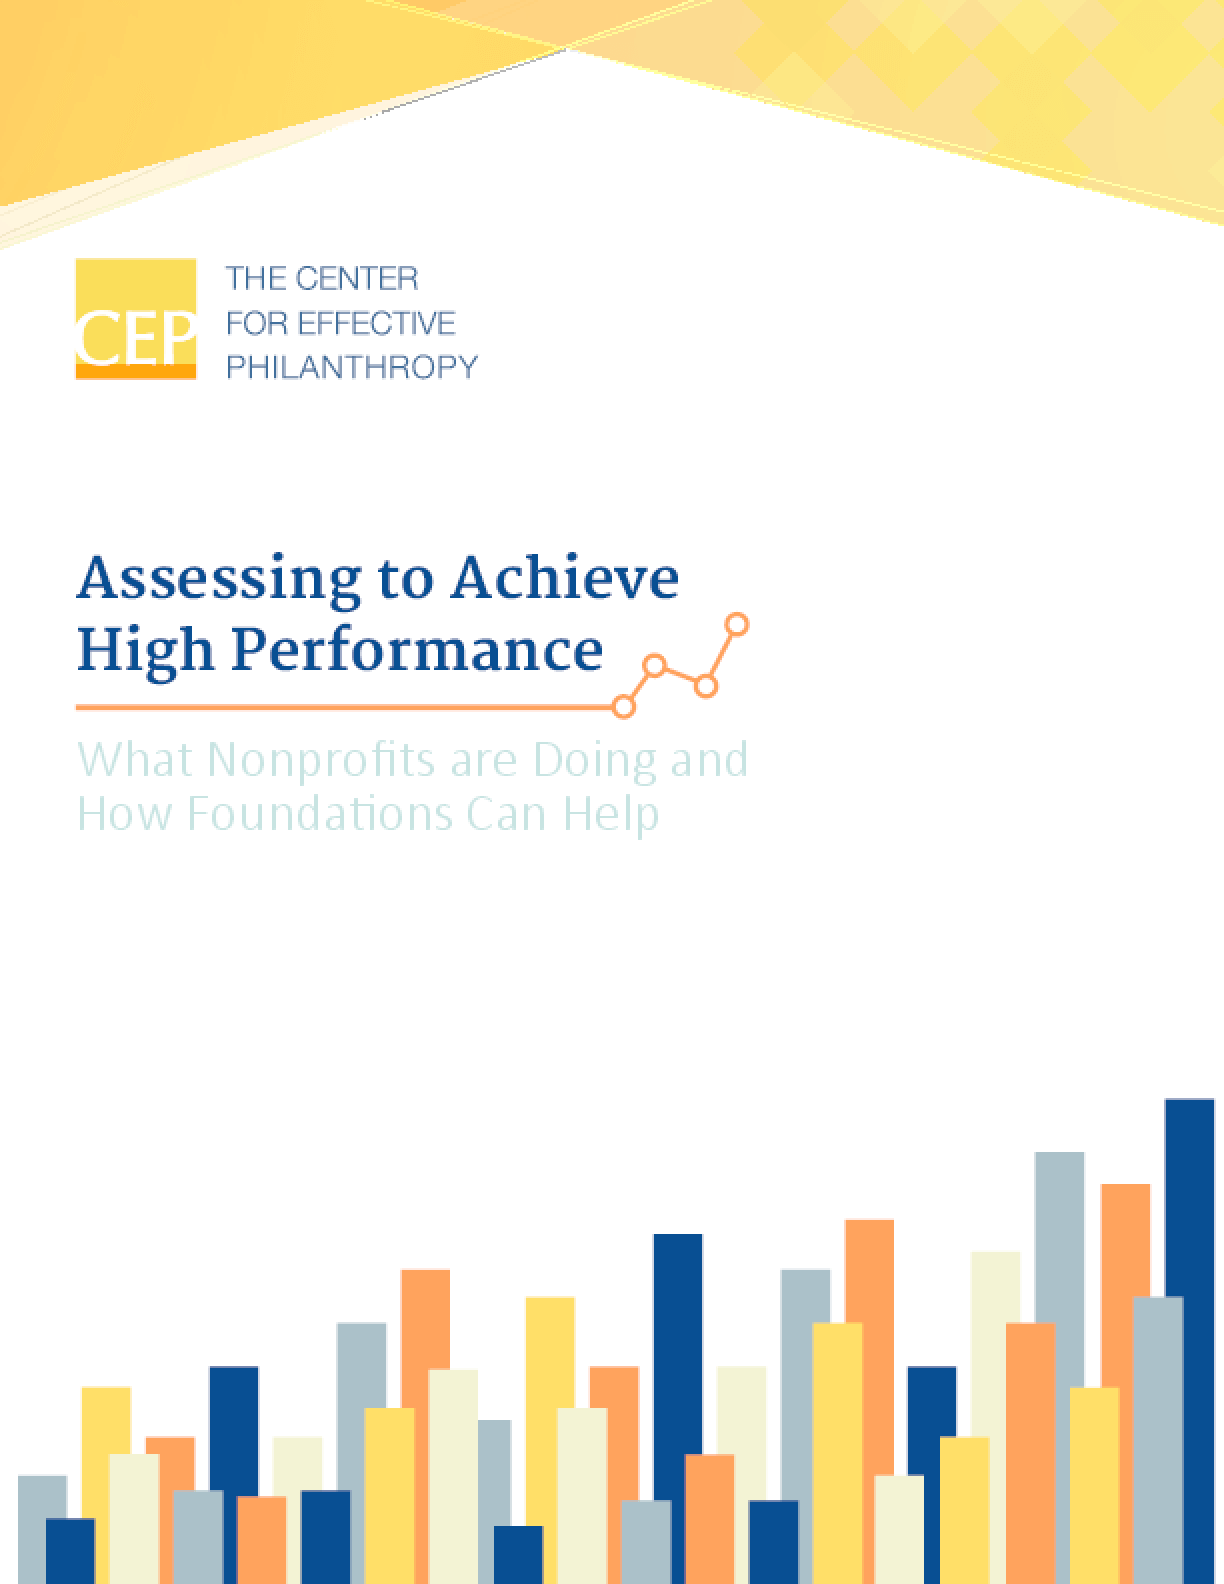 Assessing to Achieve High Performance: What Nonprofits are Doing and How Foundations Can Help